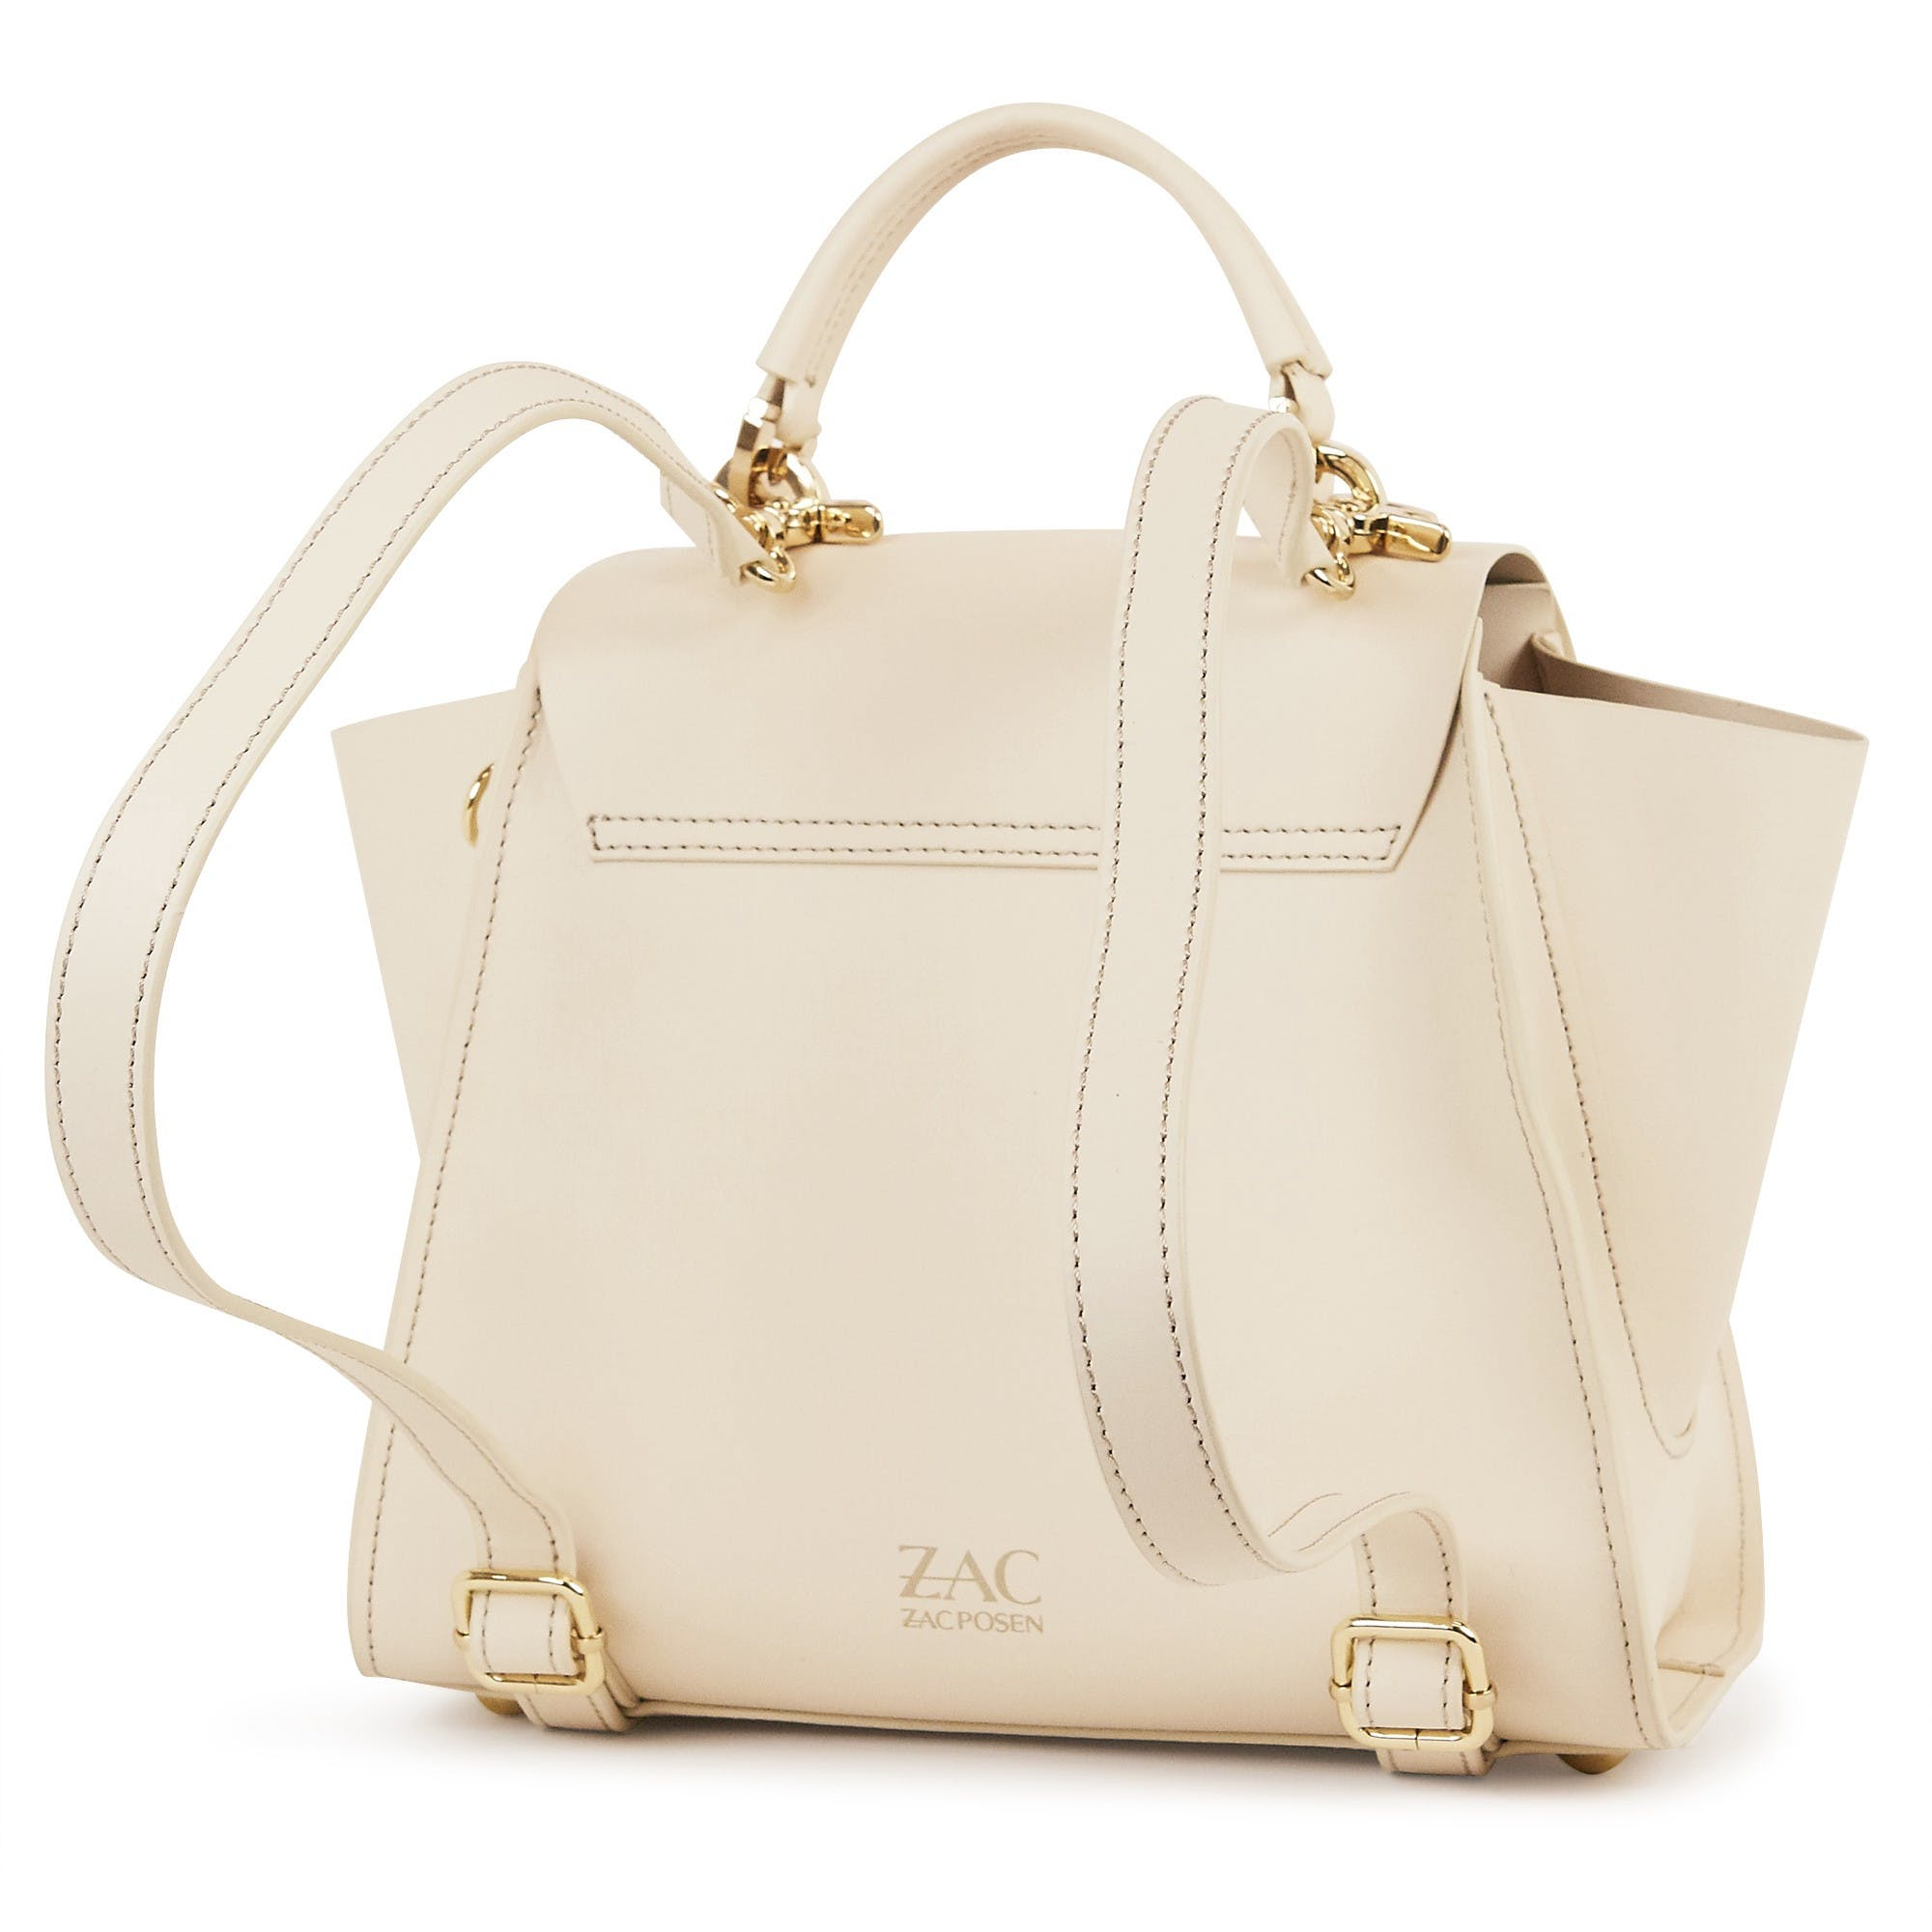 ZAC Zac Posen, Eartha Iconic Convertible Backpack